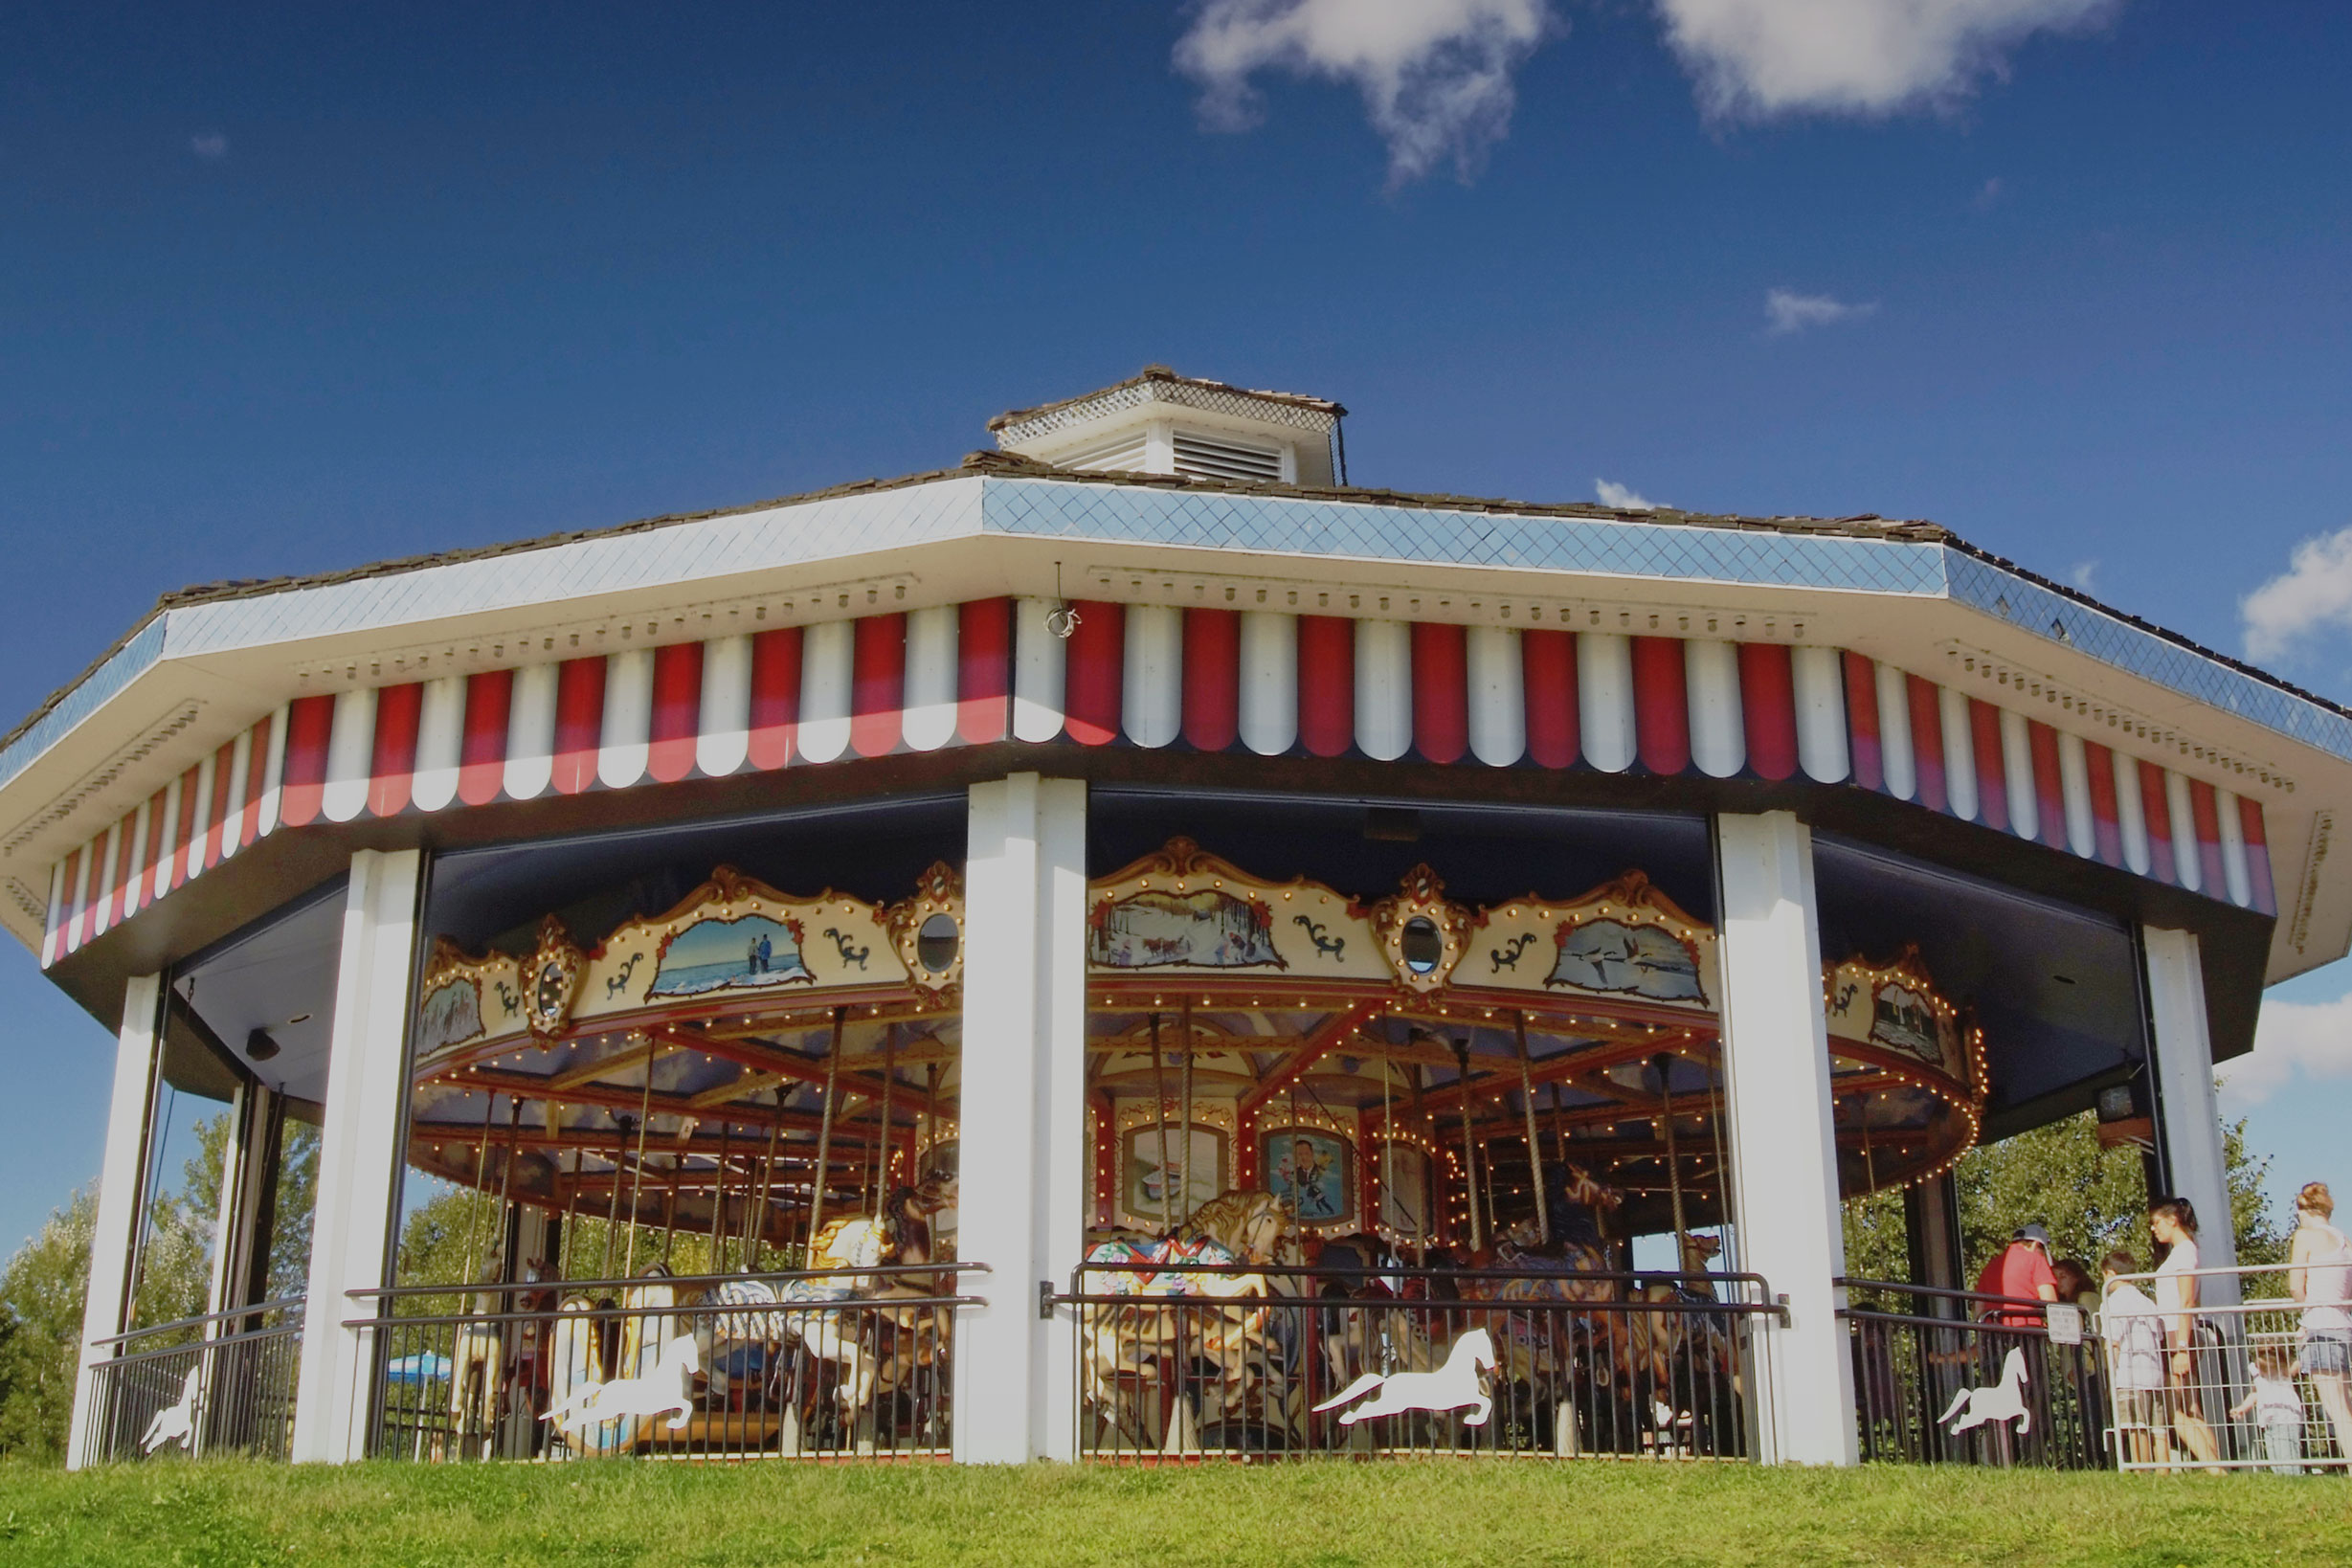 North-Bay-Carousel